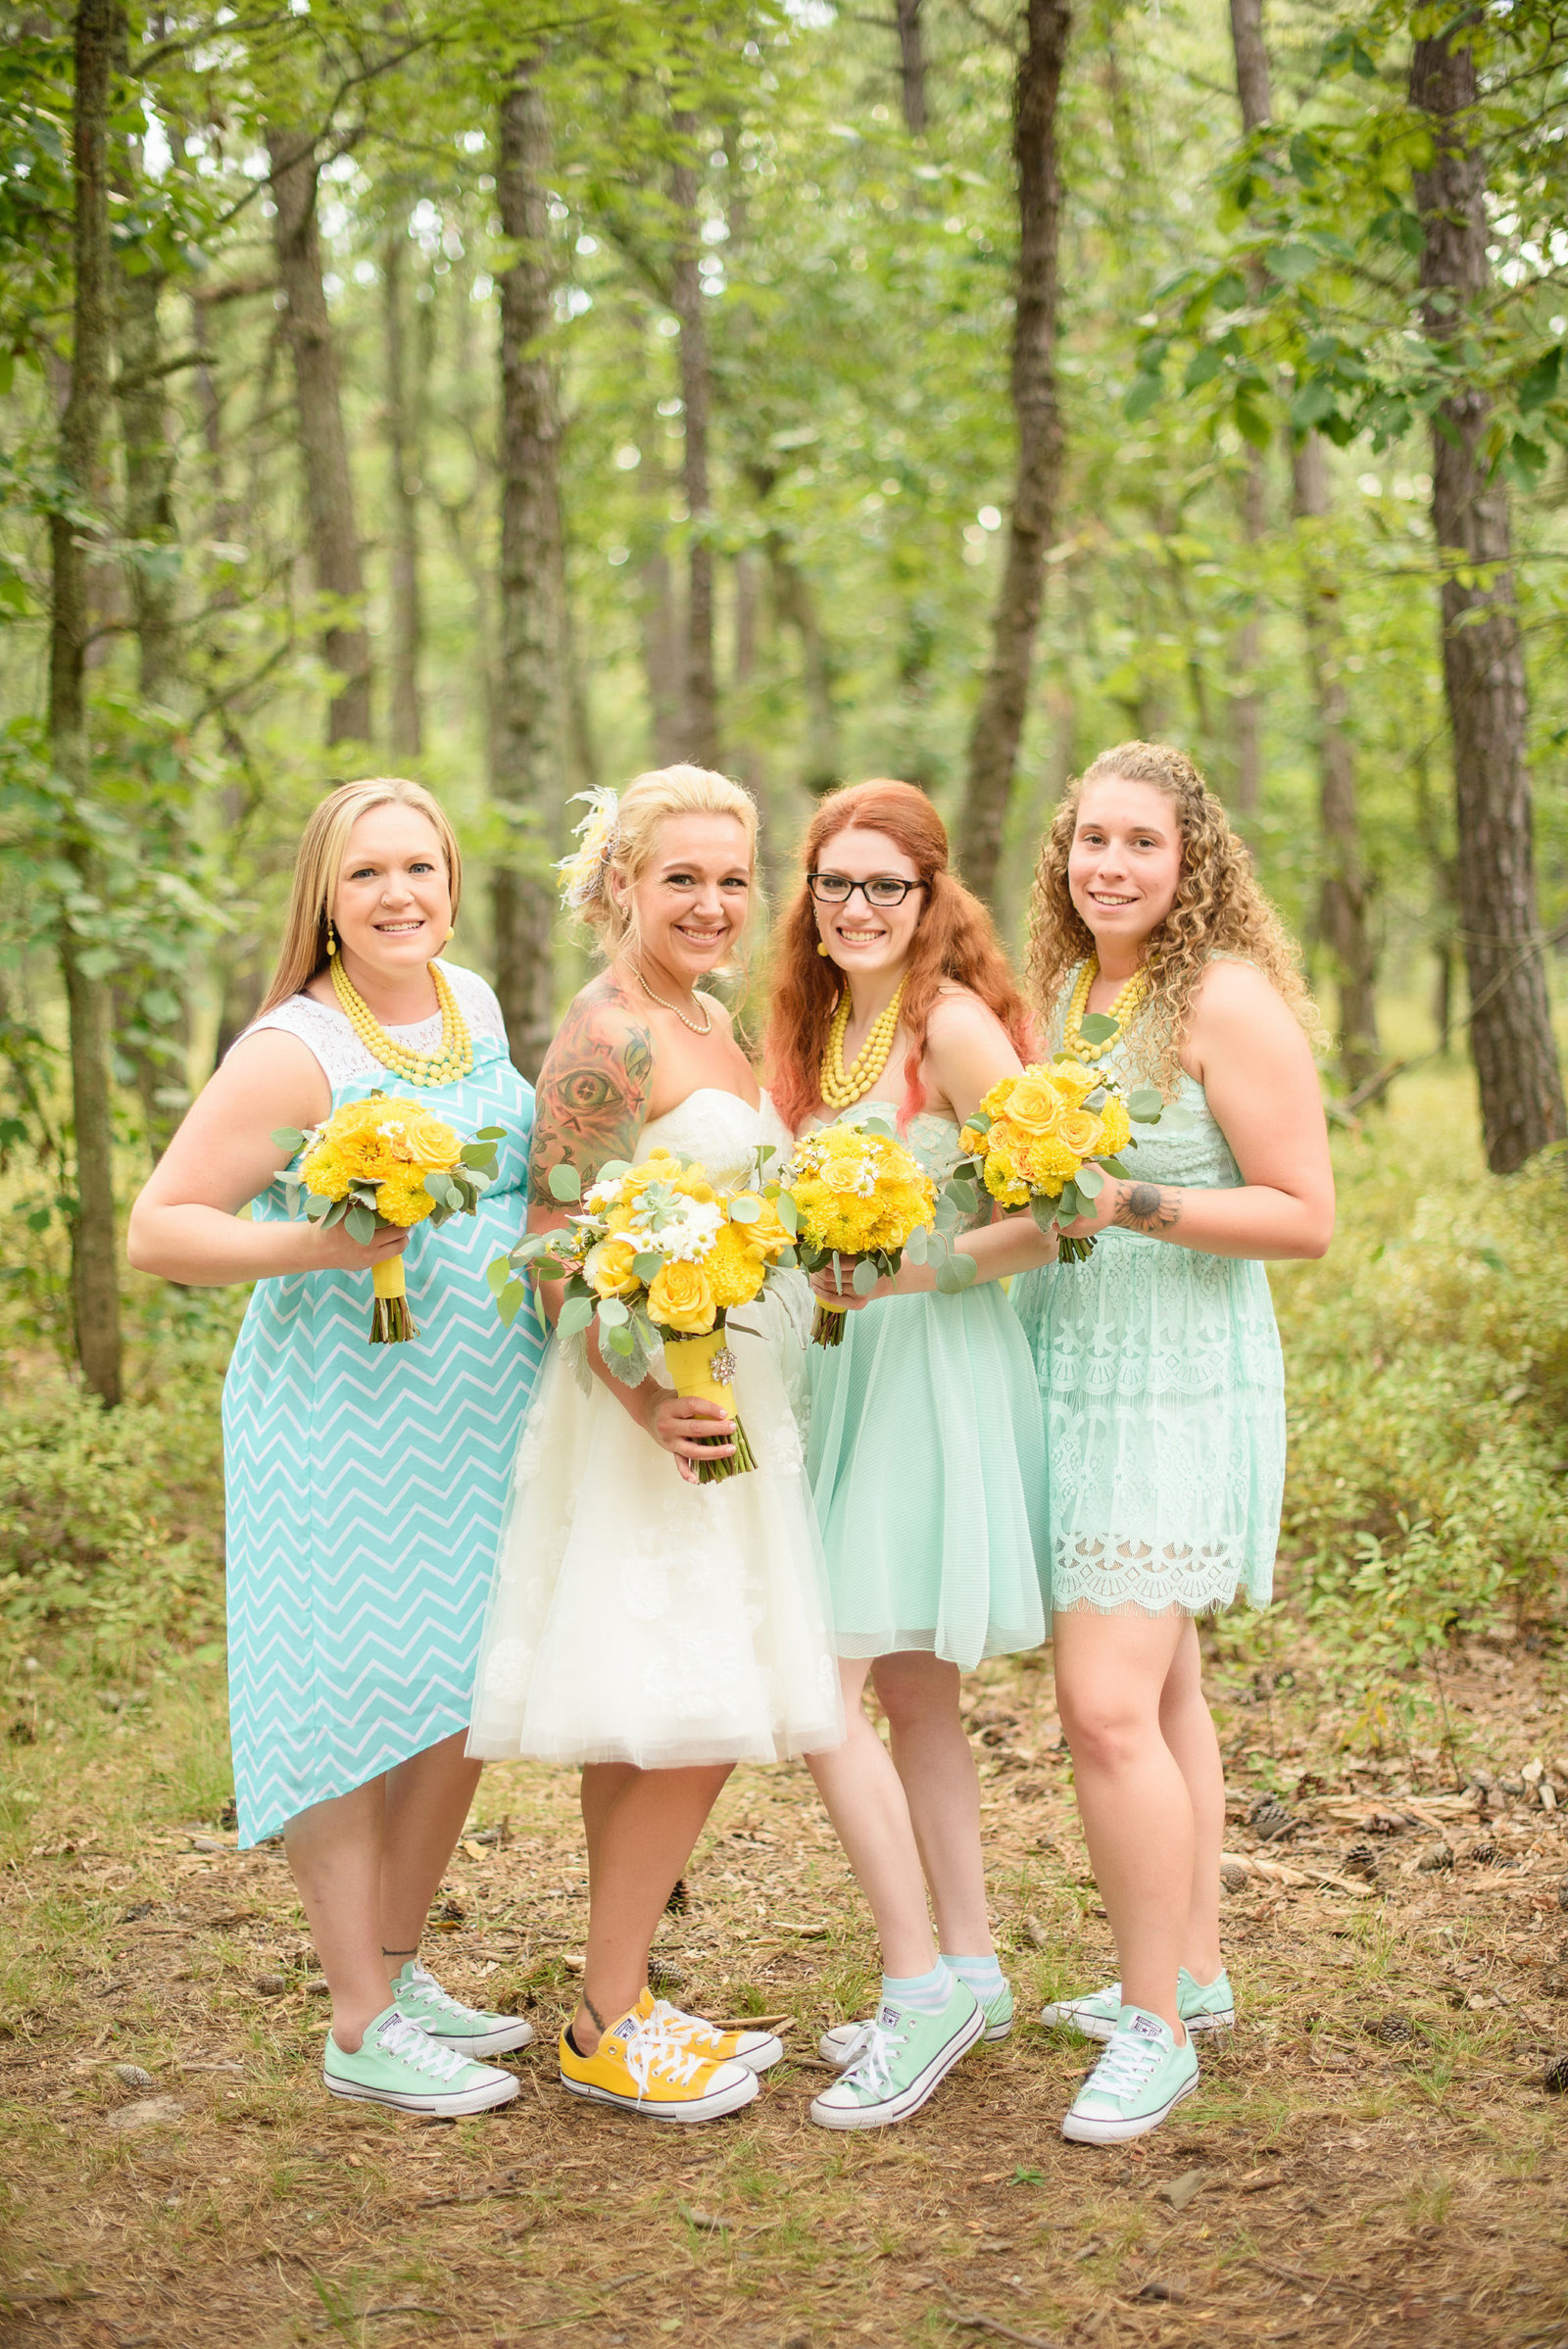 Sam&Zig_Whimsical_NJ_Wedding-155